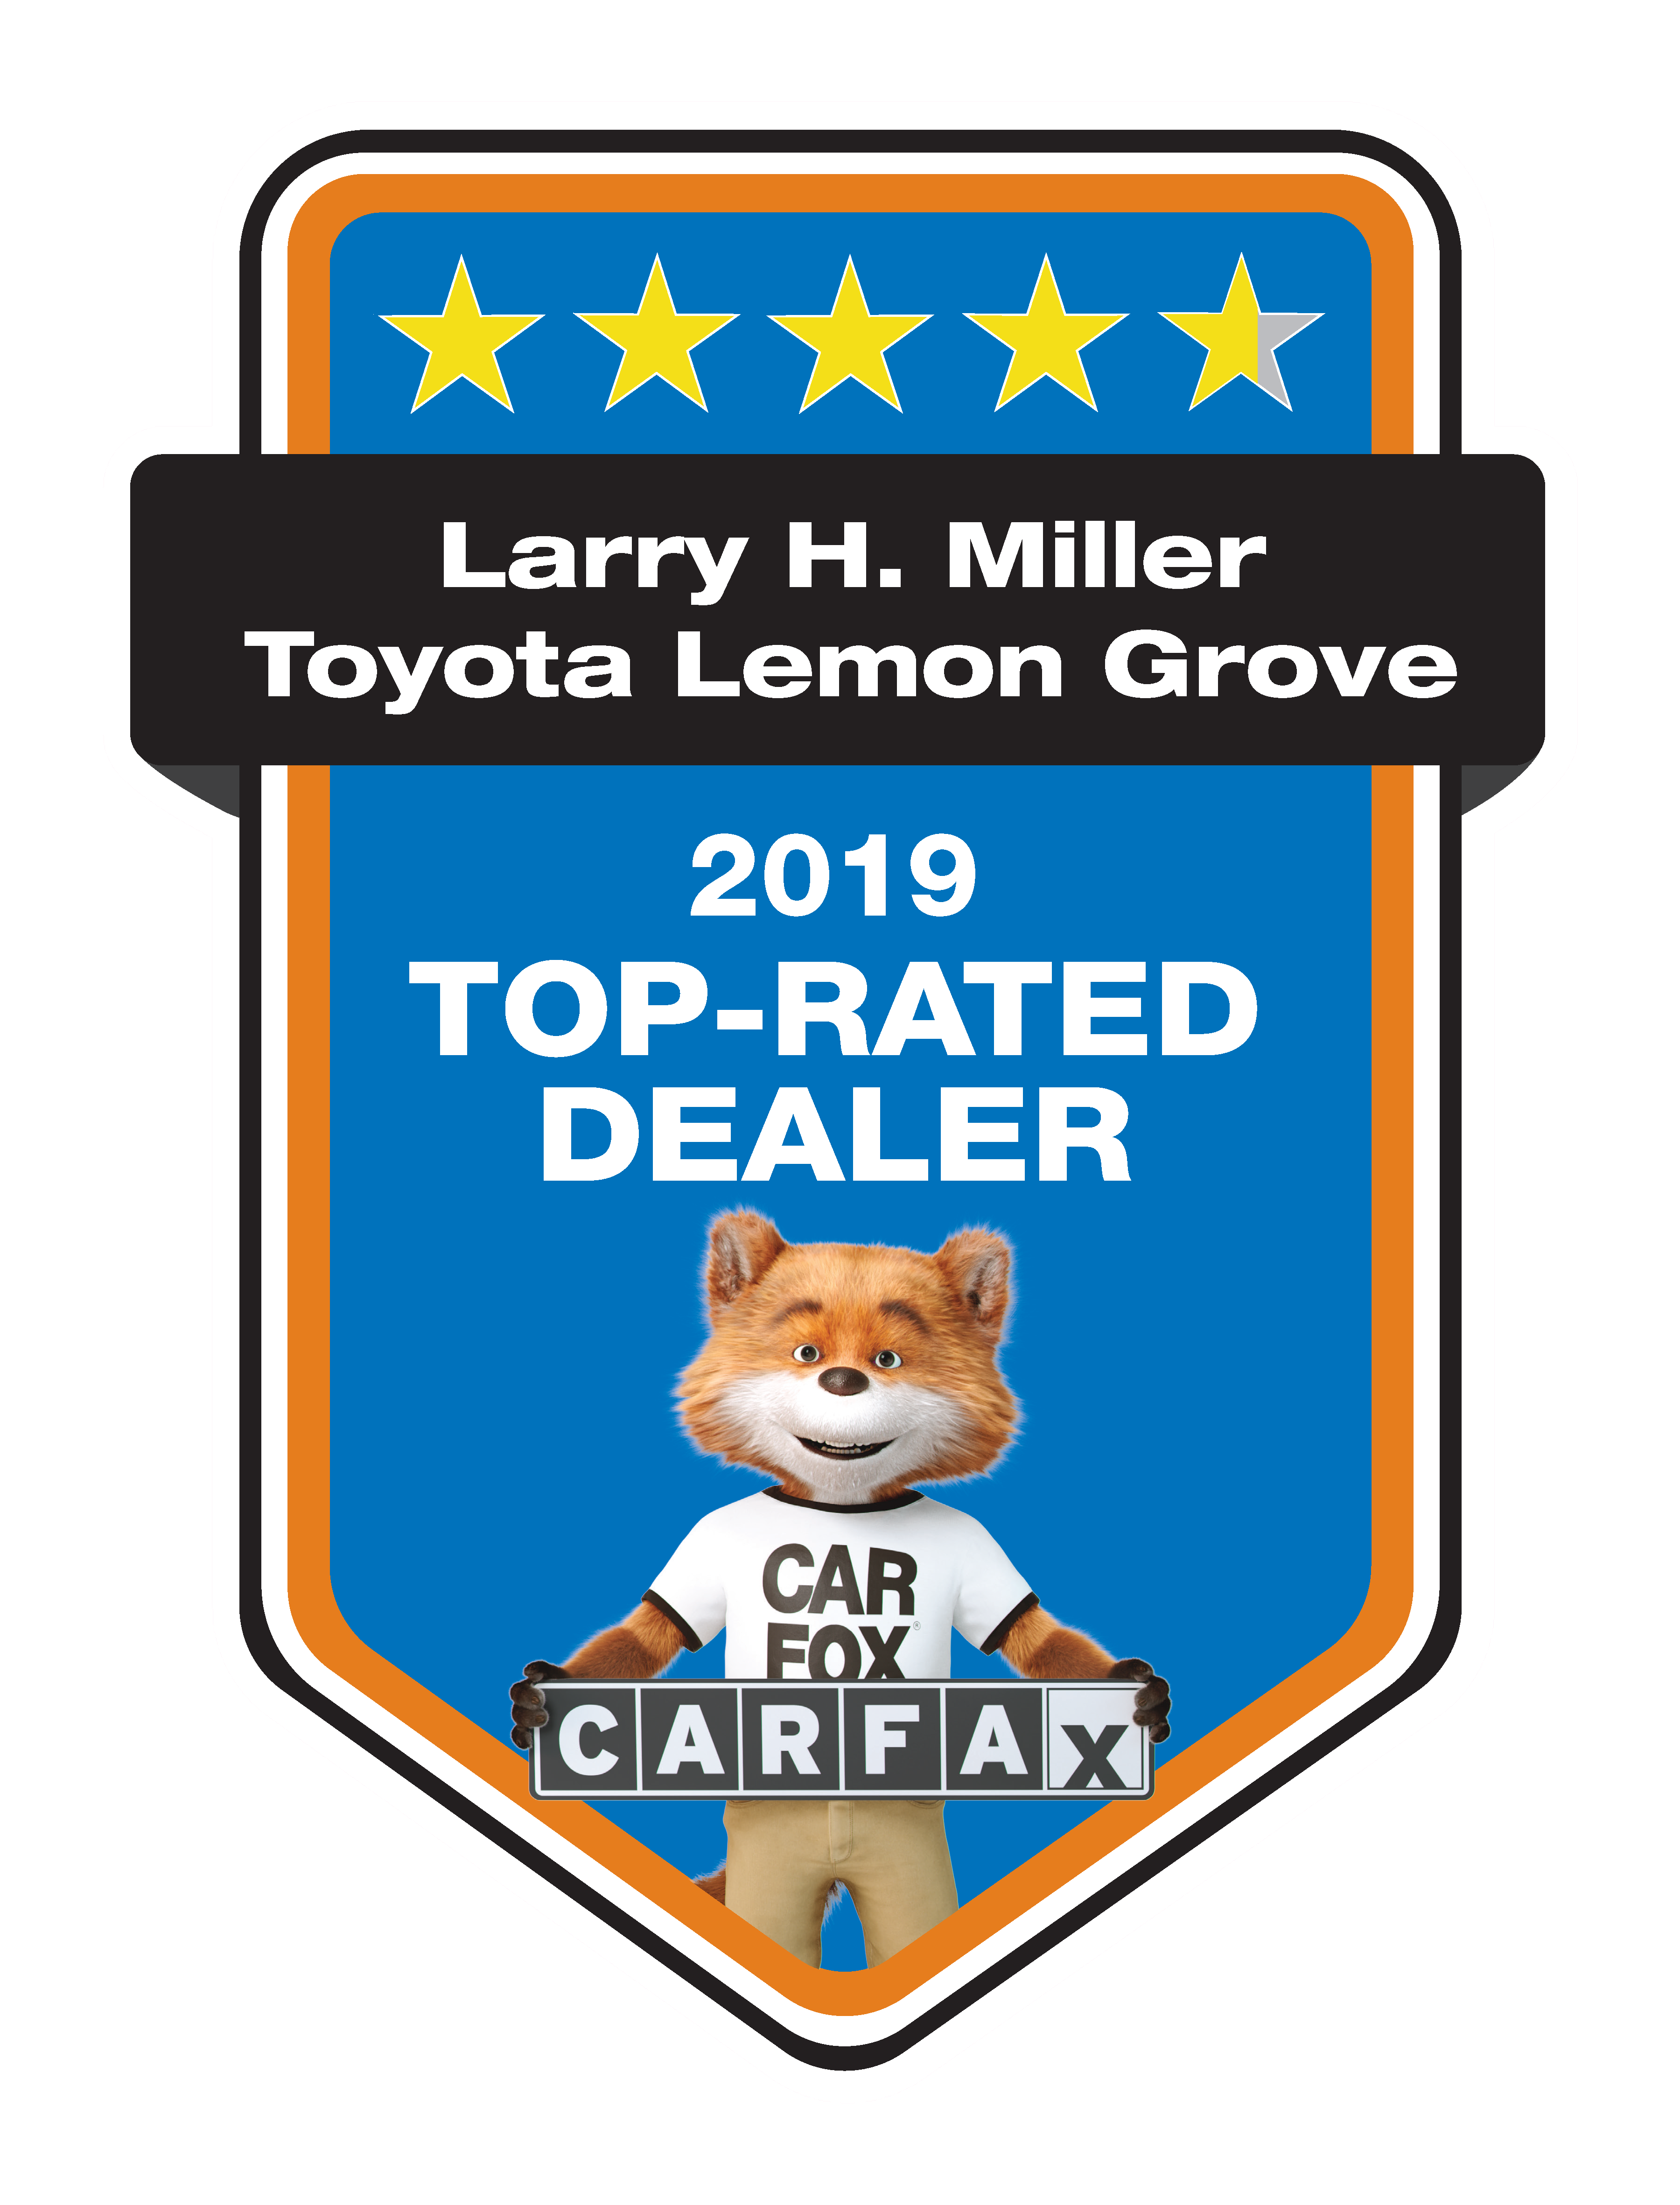 CarFax Top-Rated Dealer at Larry H Miller Toyota Lemon Grove